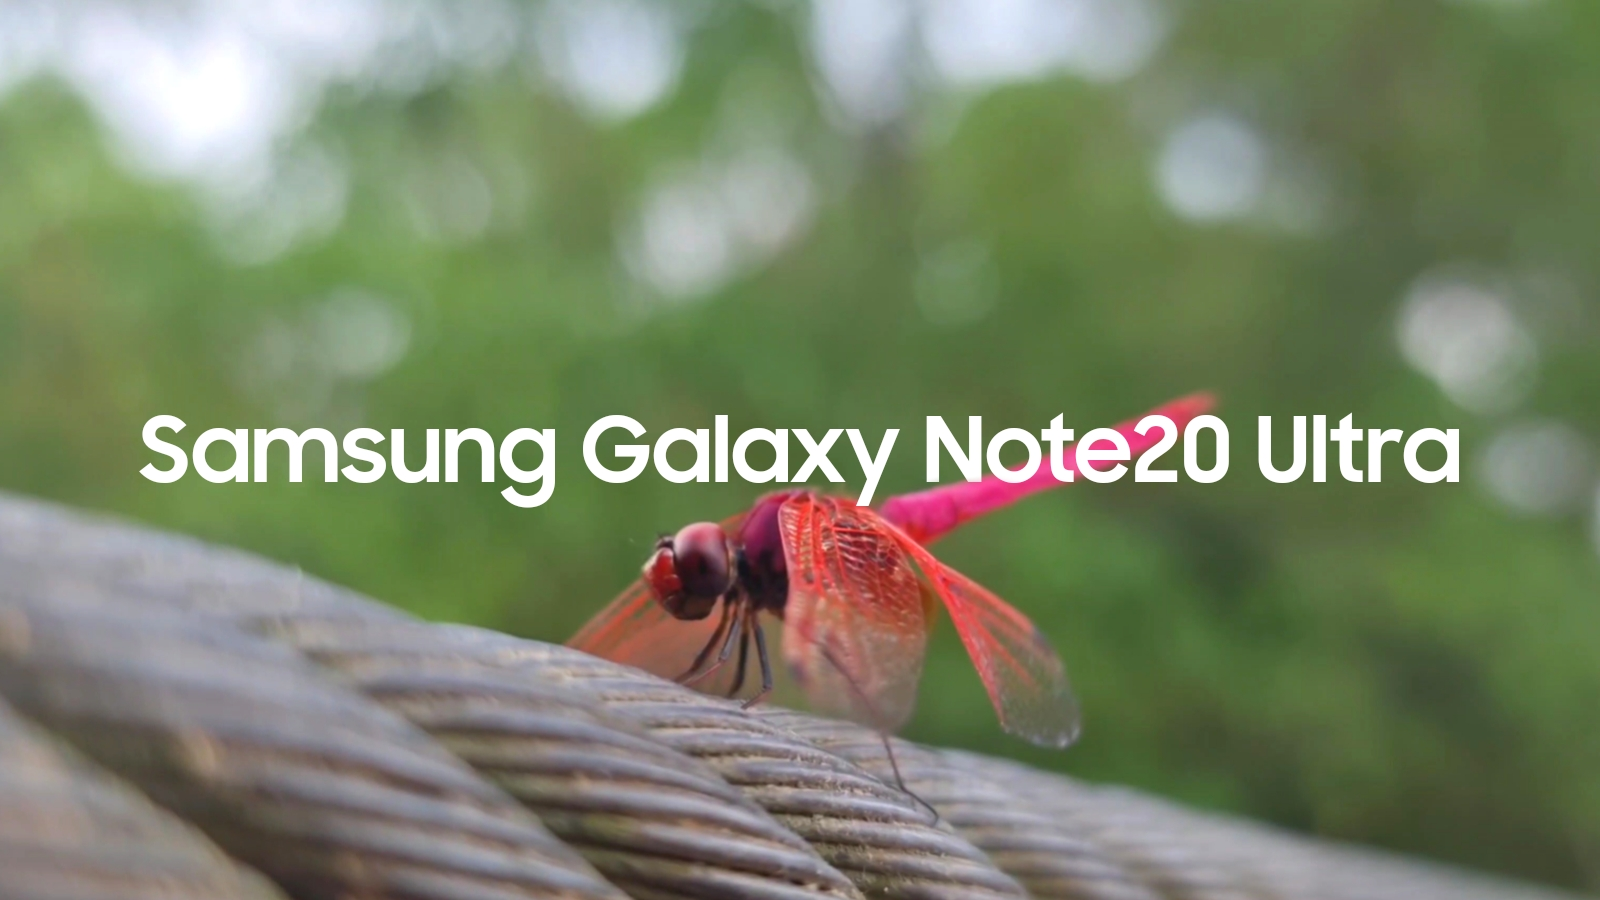 Your Samsung Phone can achieve this natural bokeh visuals for real #withGalaxy Watch the video at the end of this post to find out